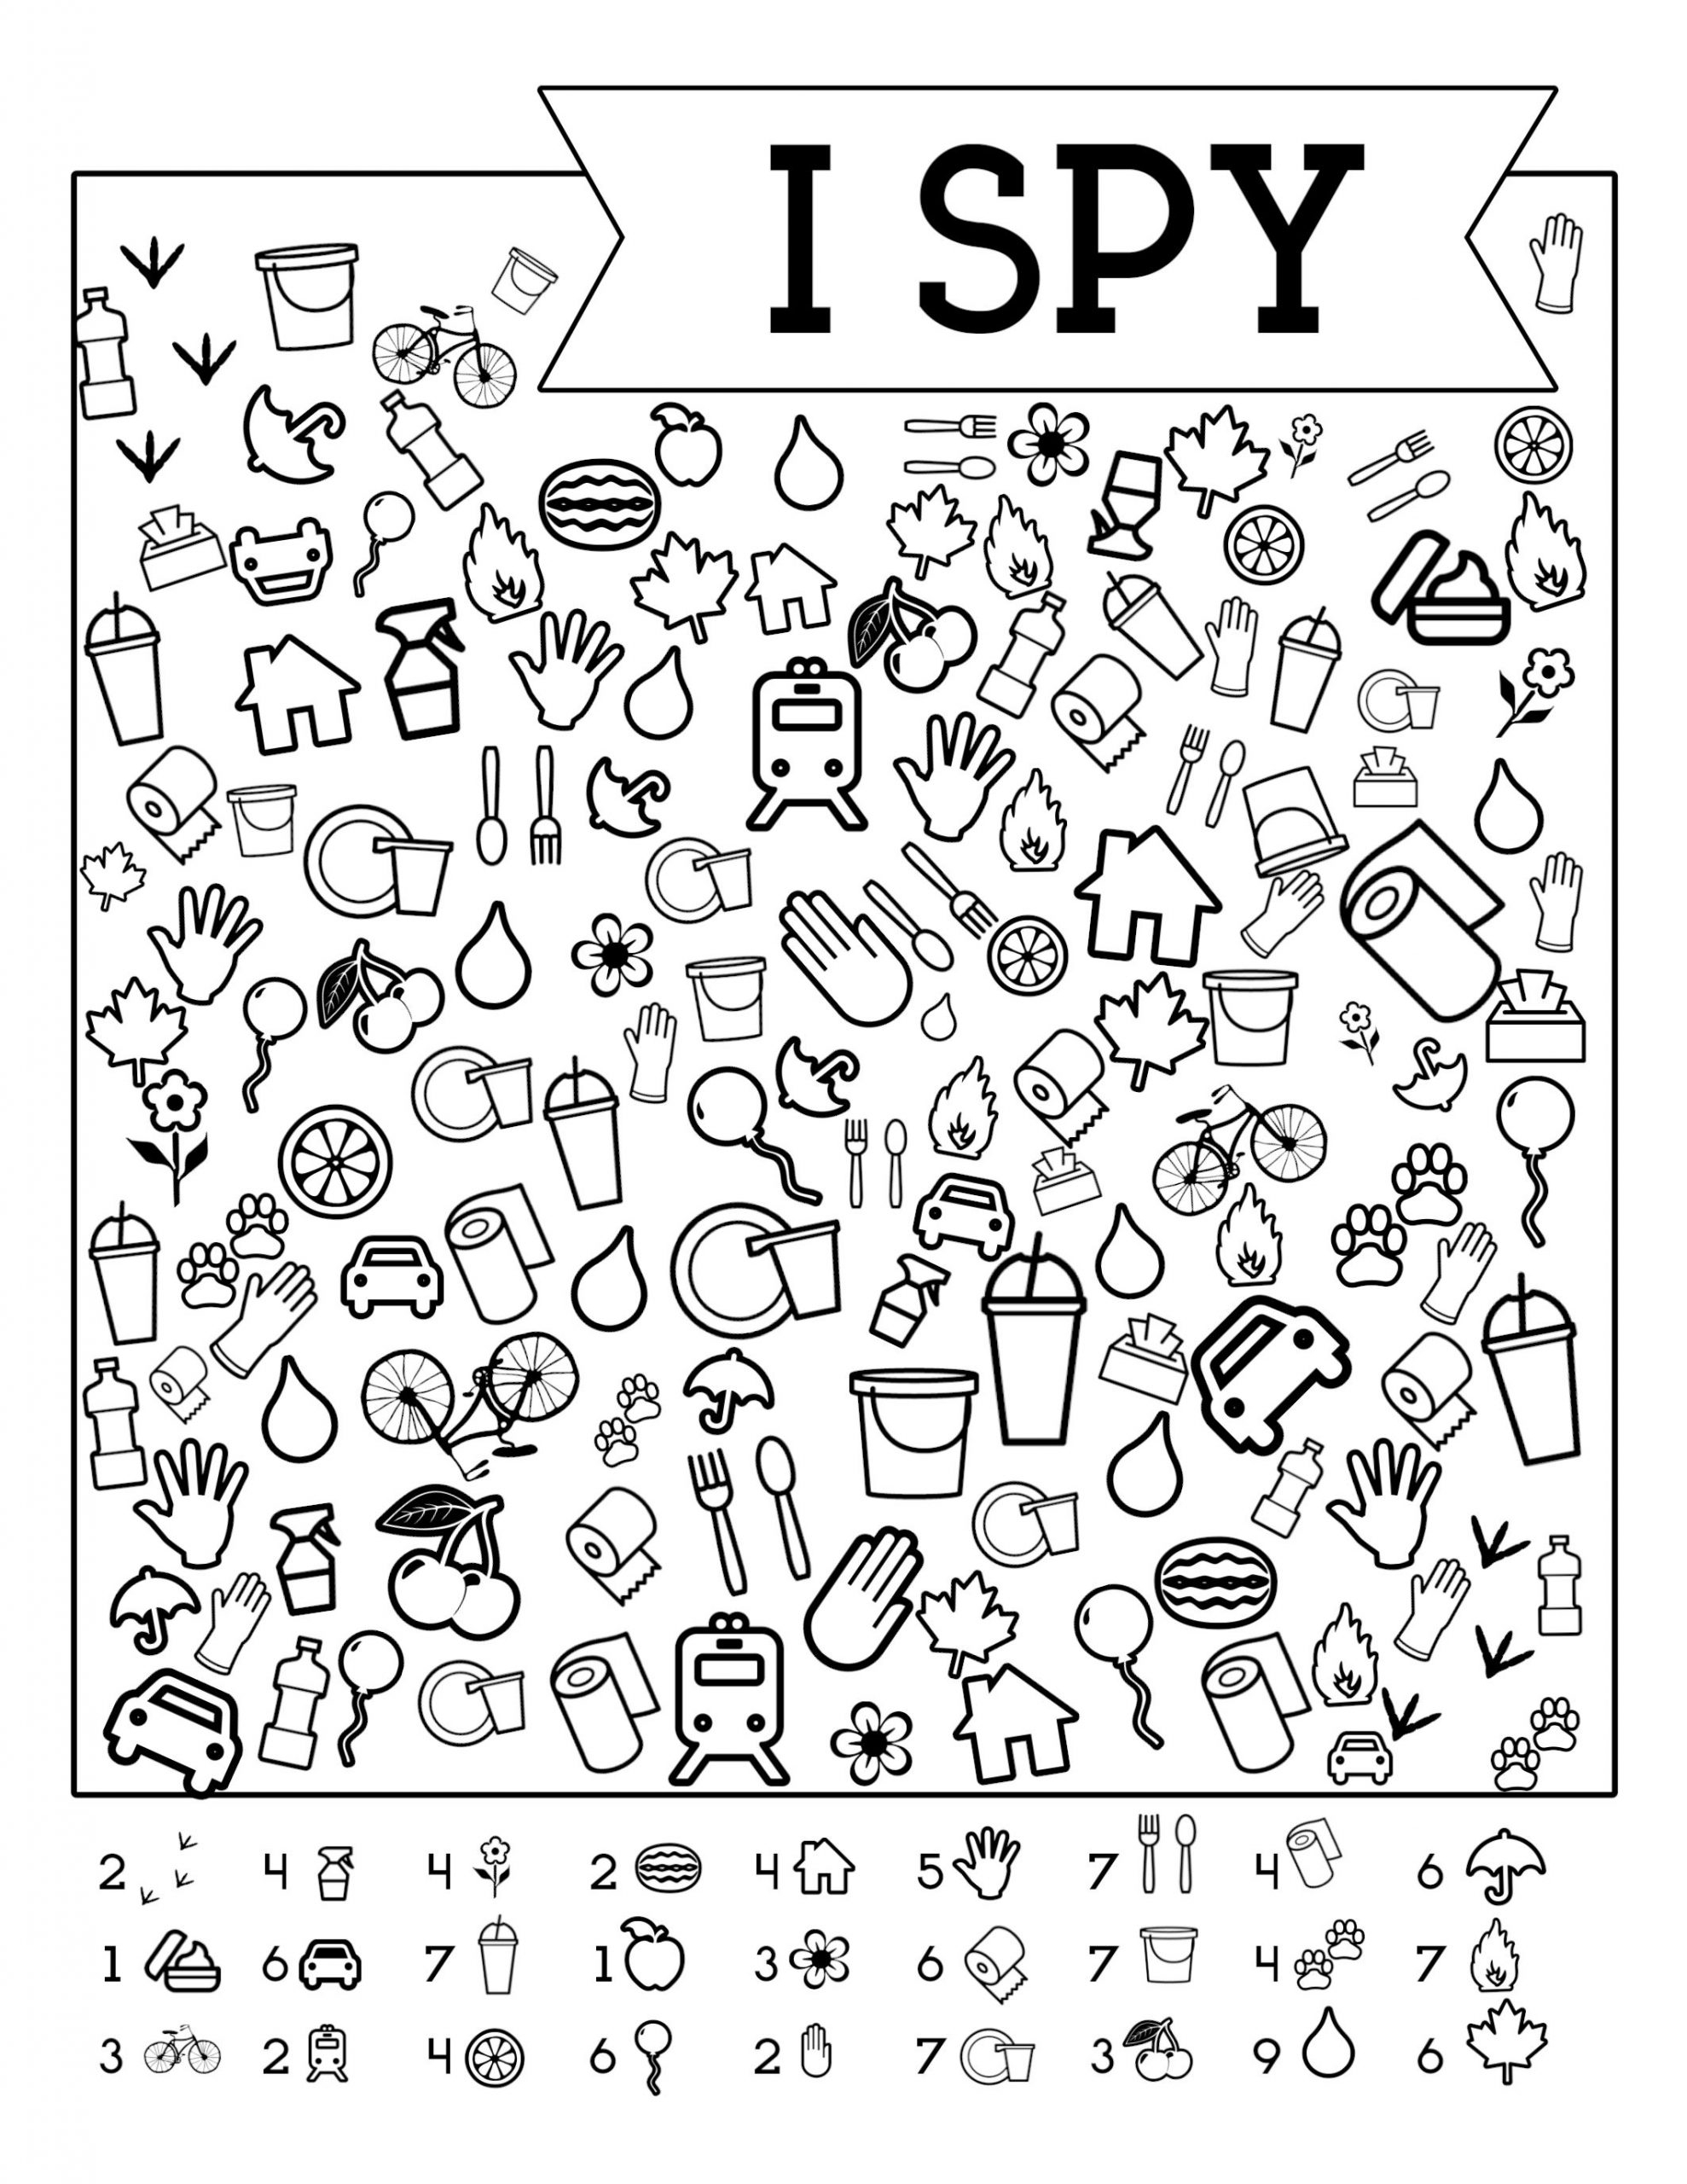 Worksheet I Spy Free Printable Kids Game Spiele Fur Kinder